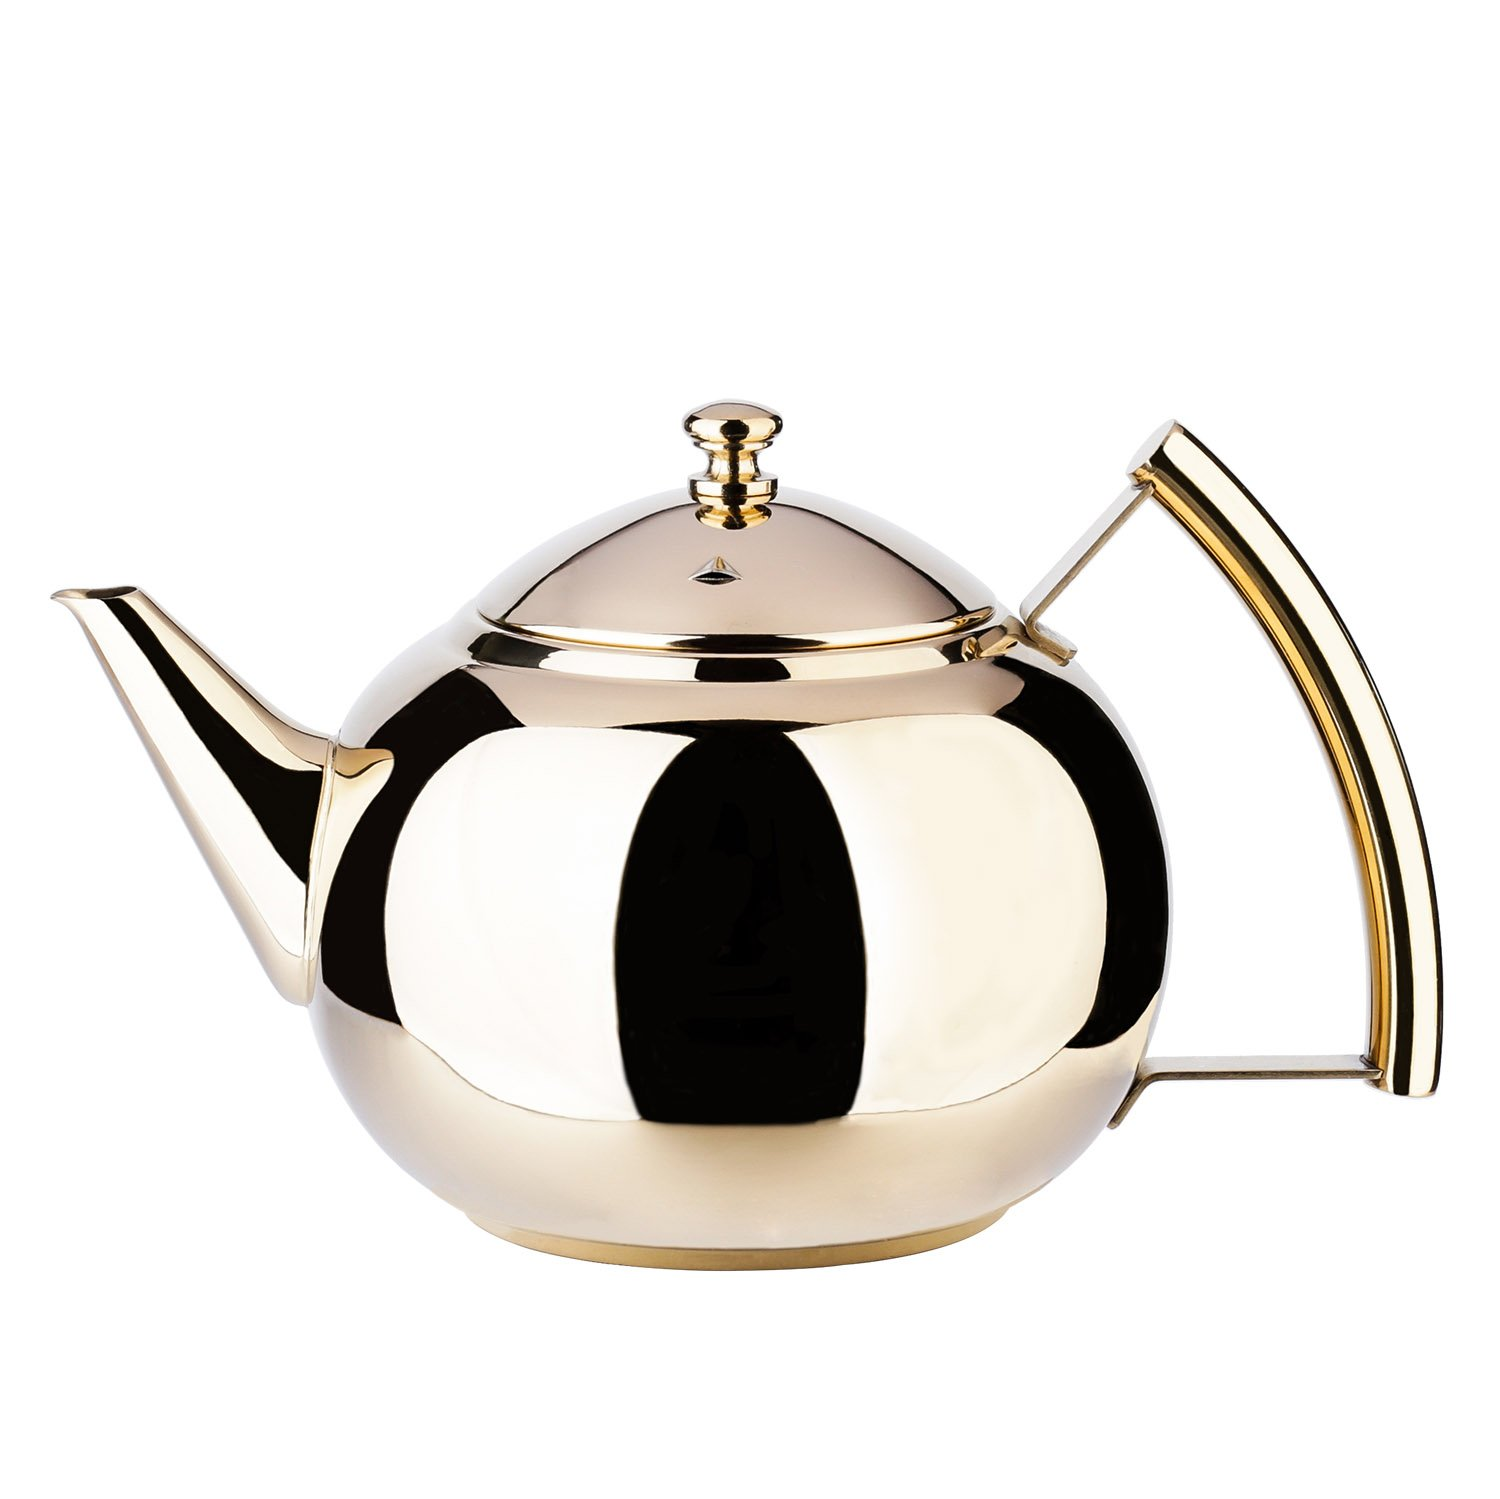 2 Liter Tea Pot Gold Pot with Infuser for Loose Tea Stainless Steel Coffee Kettle 8 Cup Induction Stovetop Copper Teapot Strainer for Boiling Hot Water Mirror Finish 2.1 Quart 68 Ounce by Onlycooker